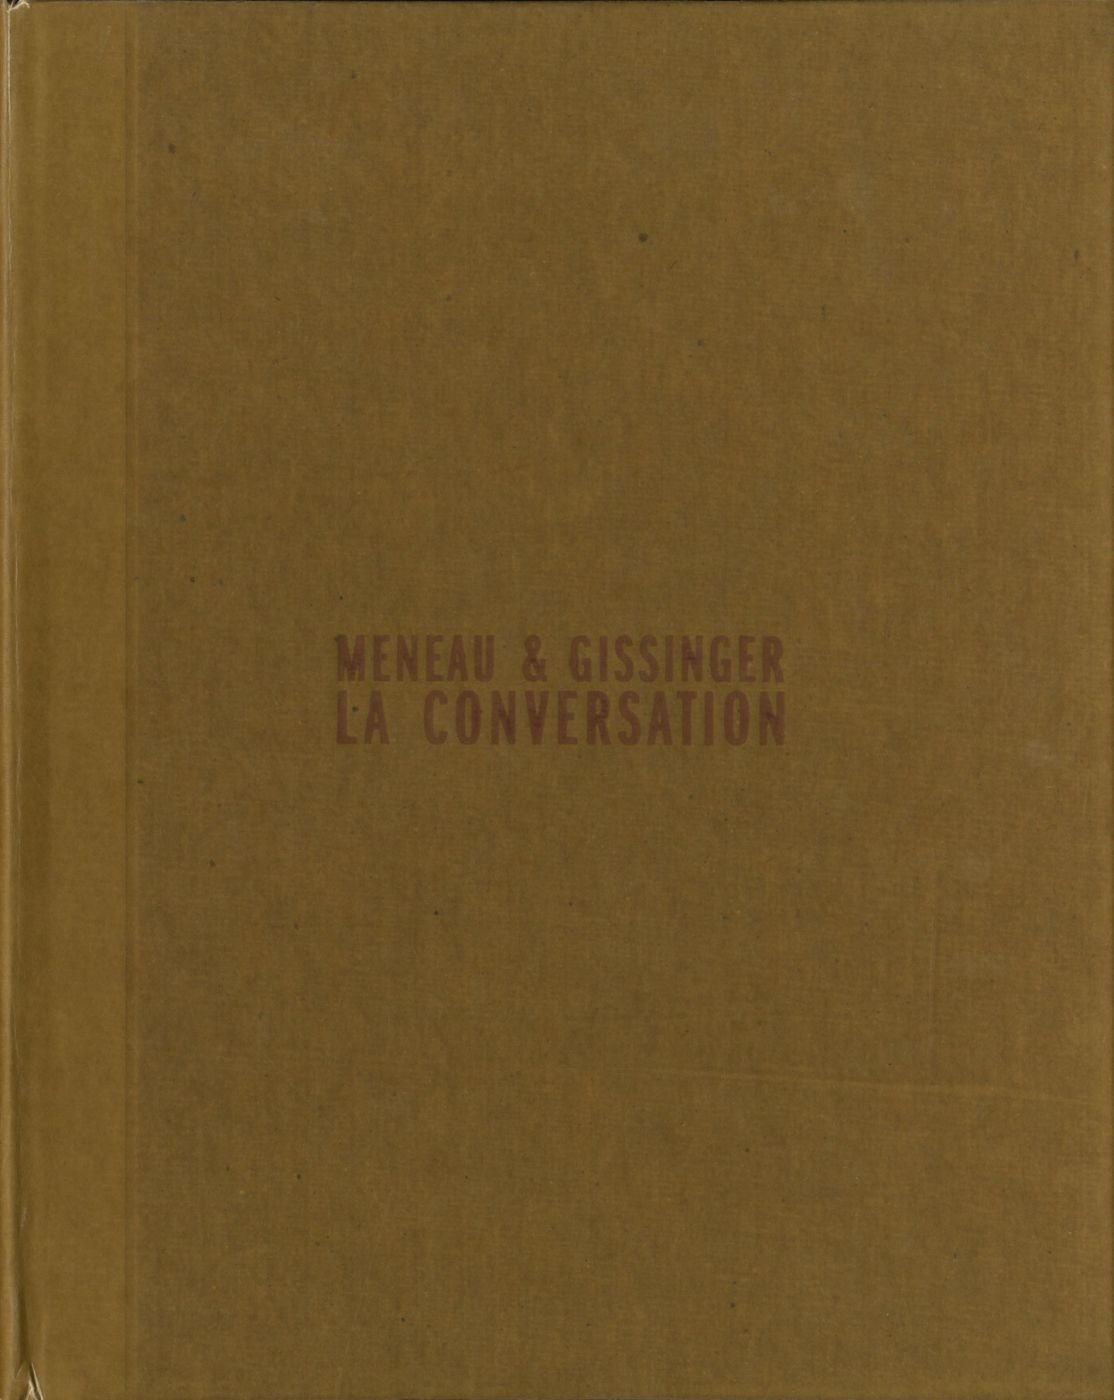 Hans Gissinger and Marc Meneau: La Conversation, Limited Edition [SIGNED]